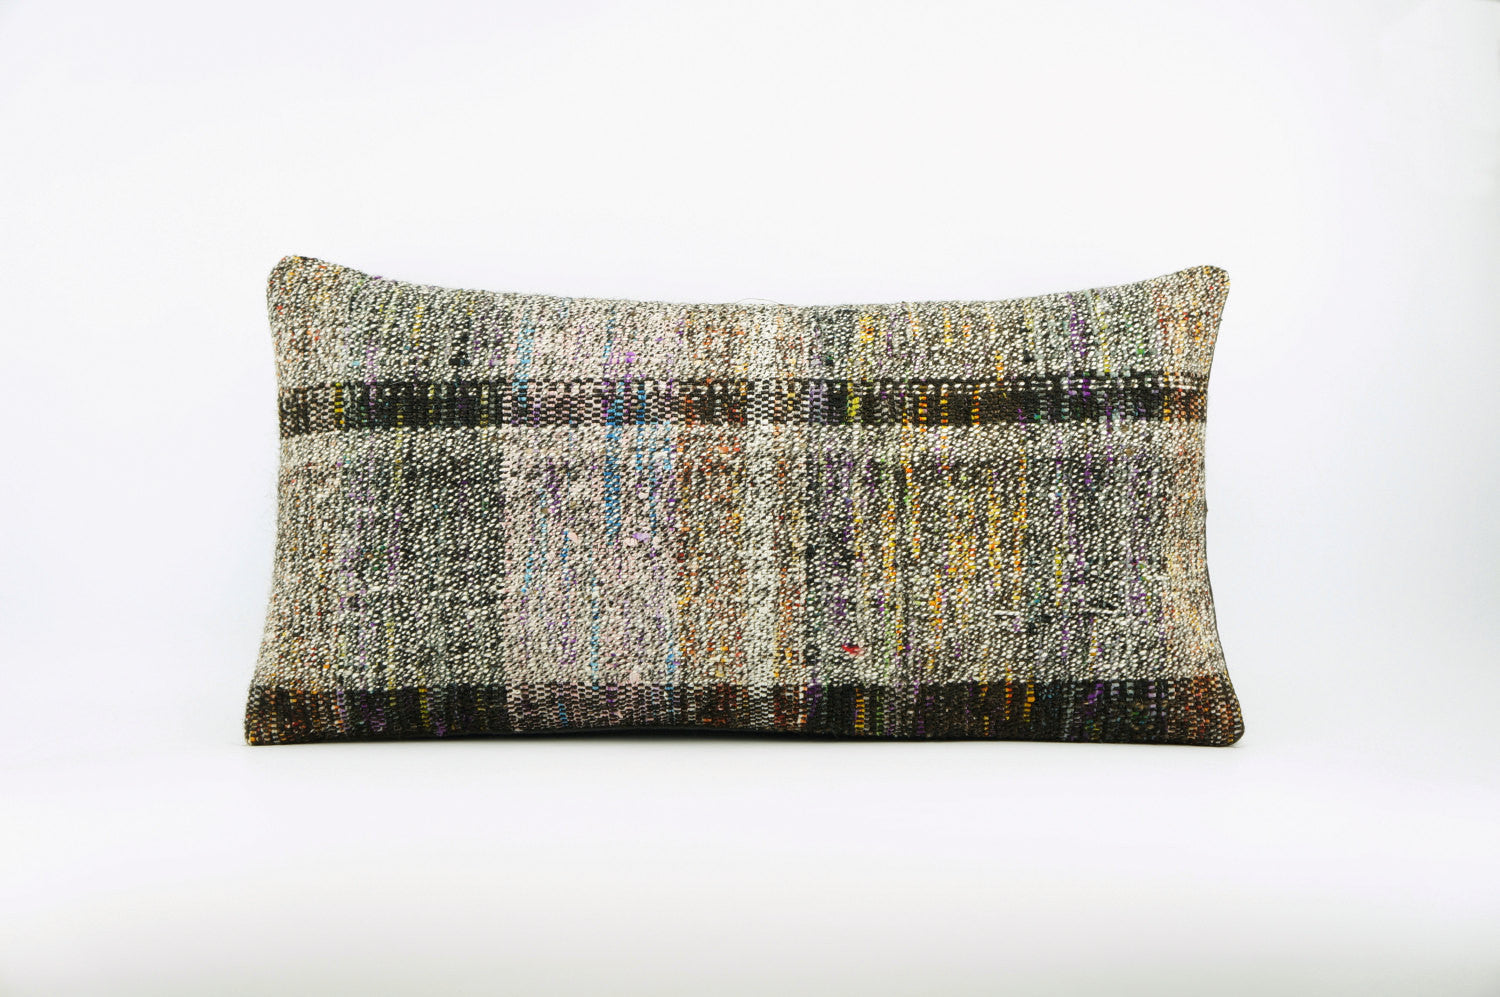 12x24  Hand Woven wool colourfull  multi colour striped decorative outdoor  Kilim Pillow cushion 1667 - kilimpillowstore  - 1